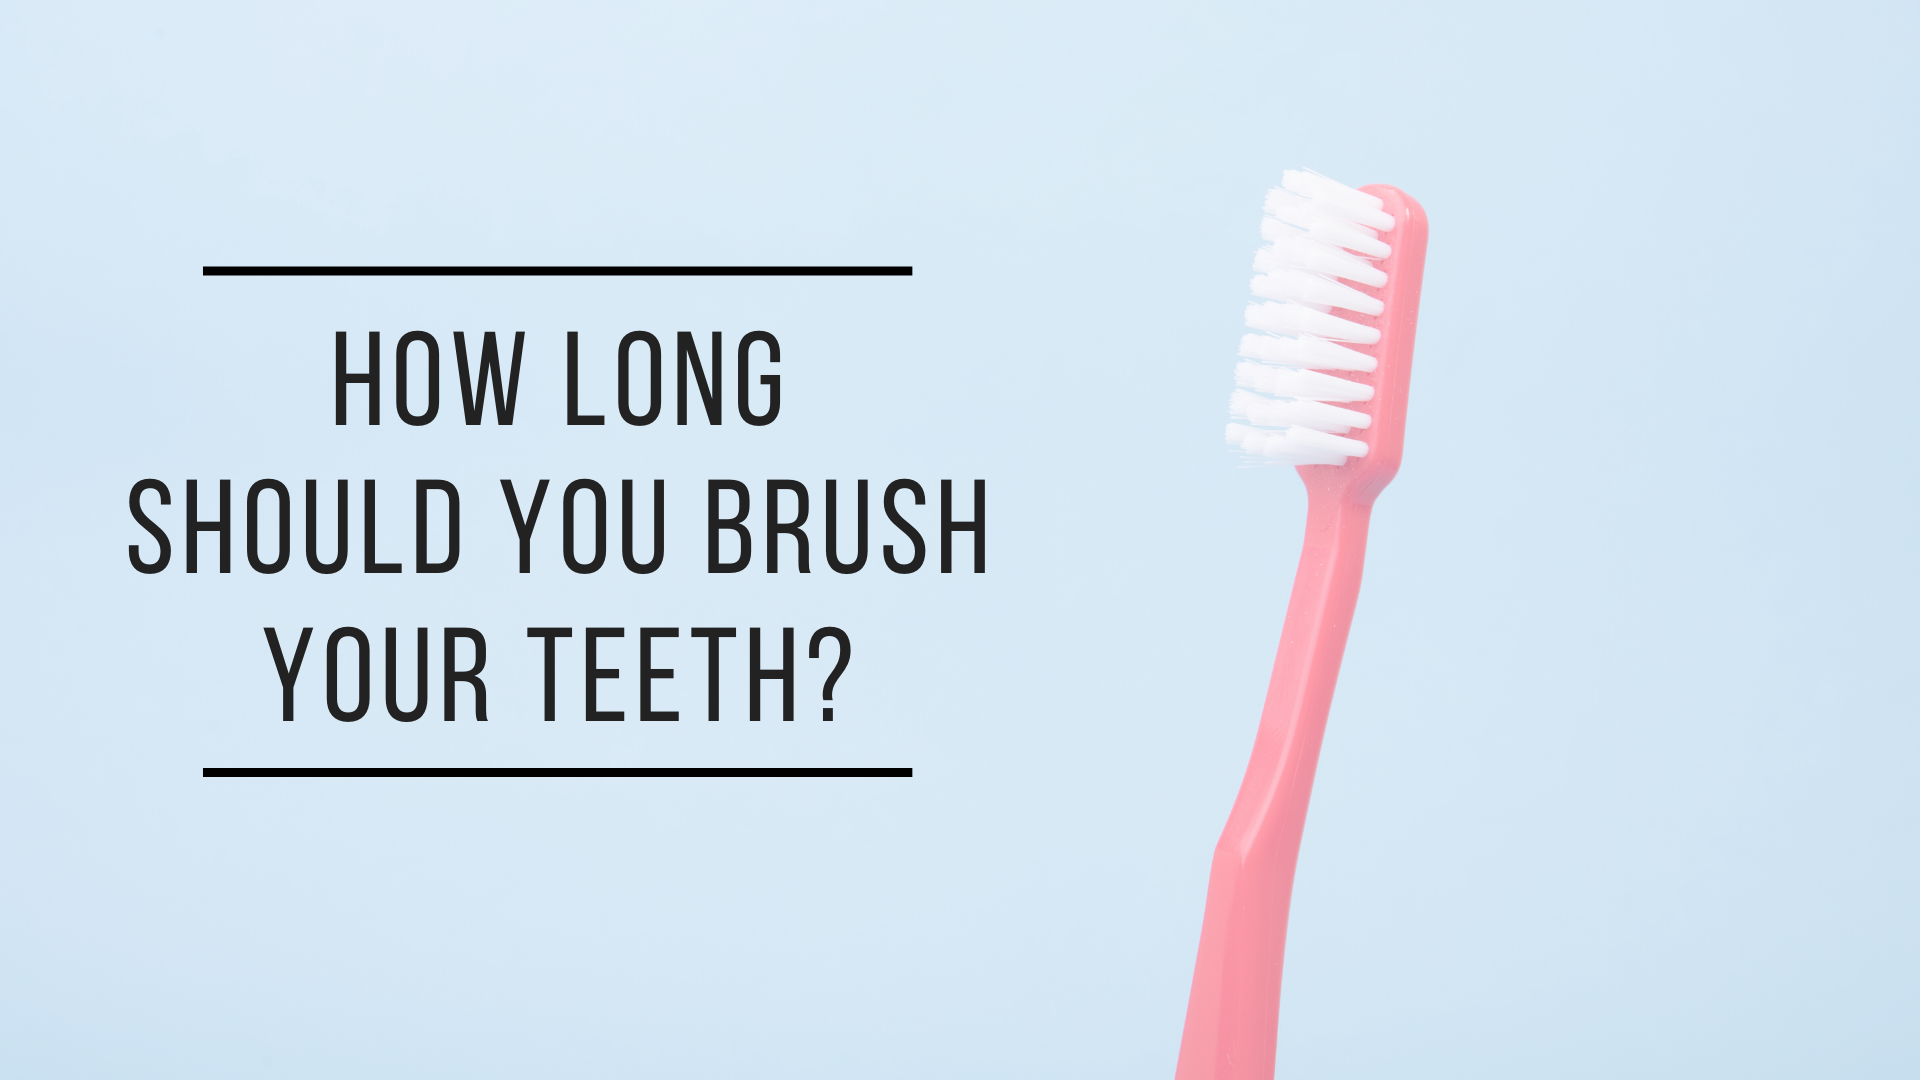 Dentist Near Me | How Long Should You Brush Your Teeth?